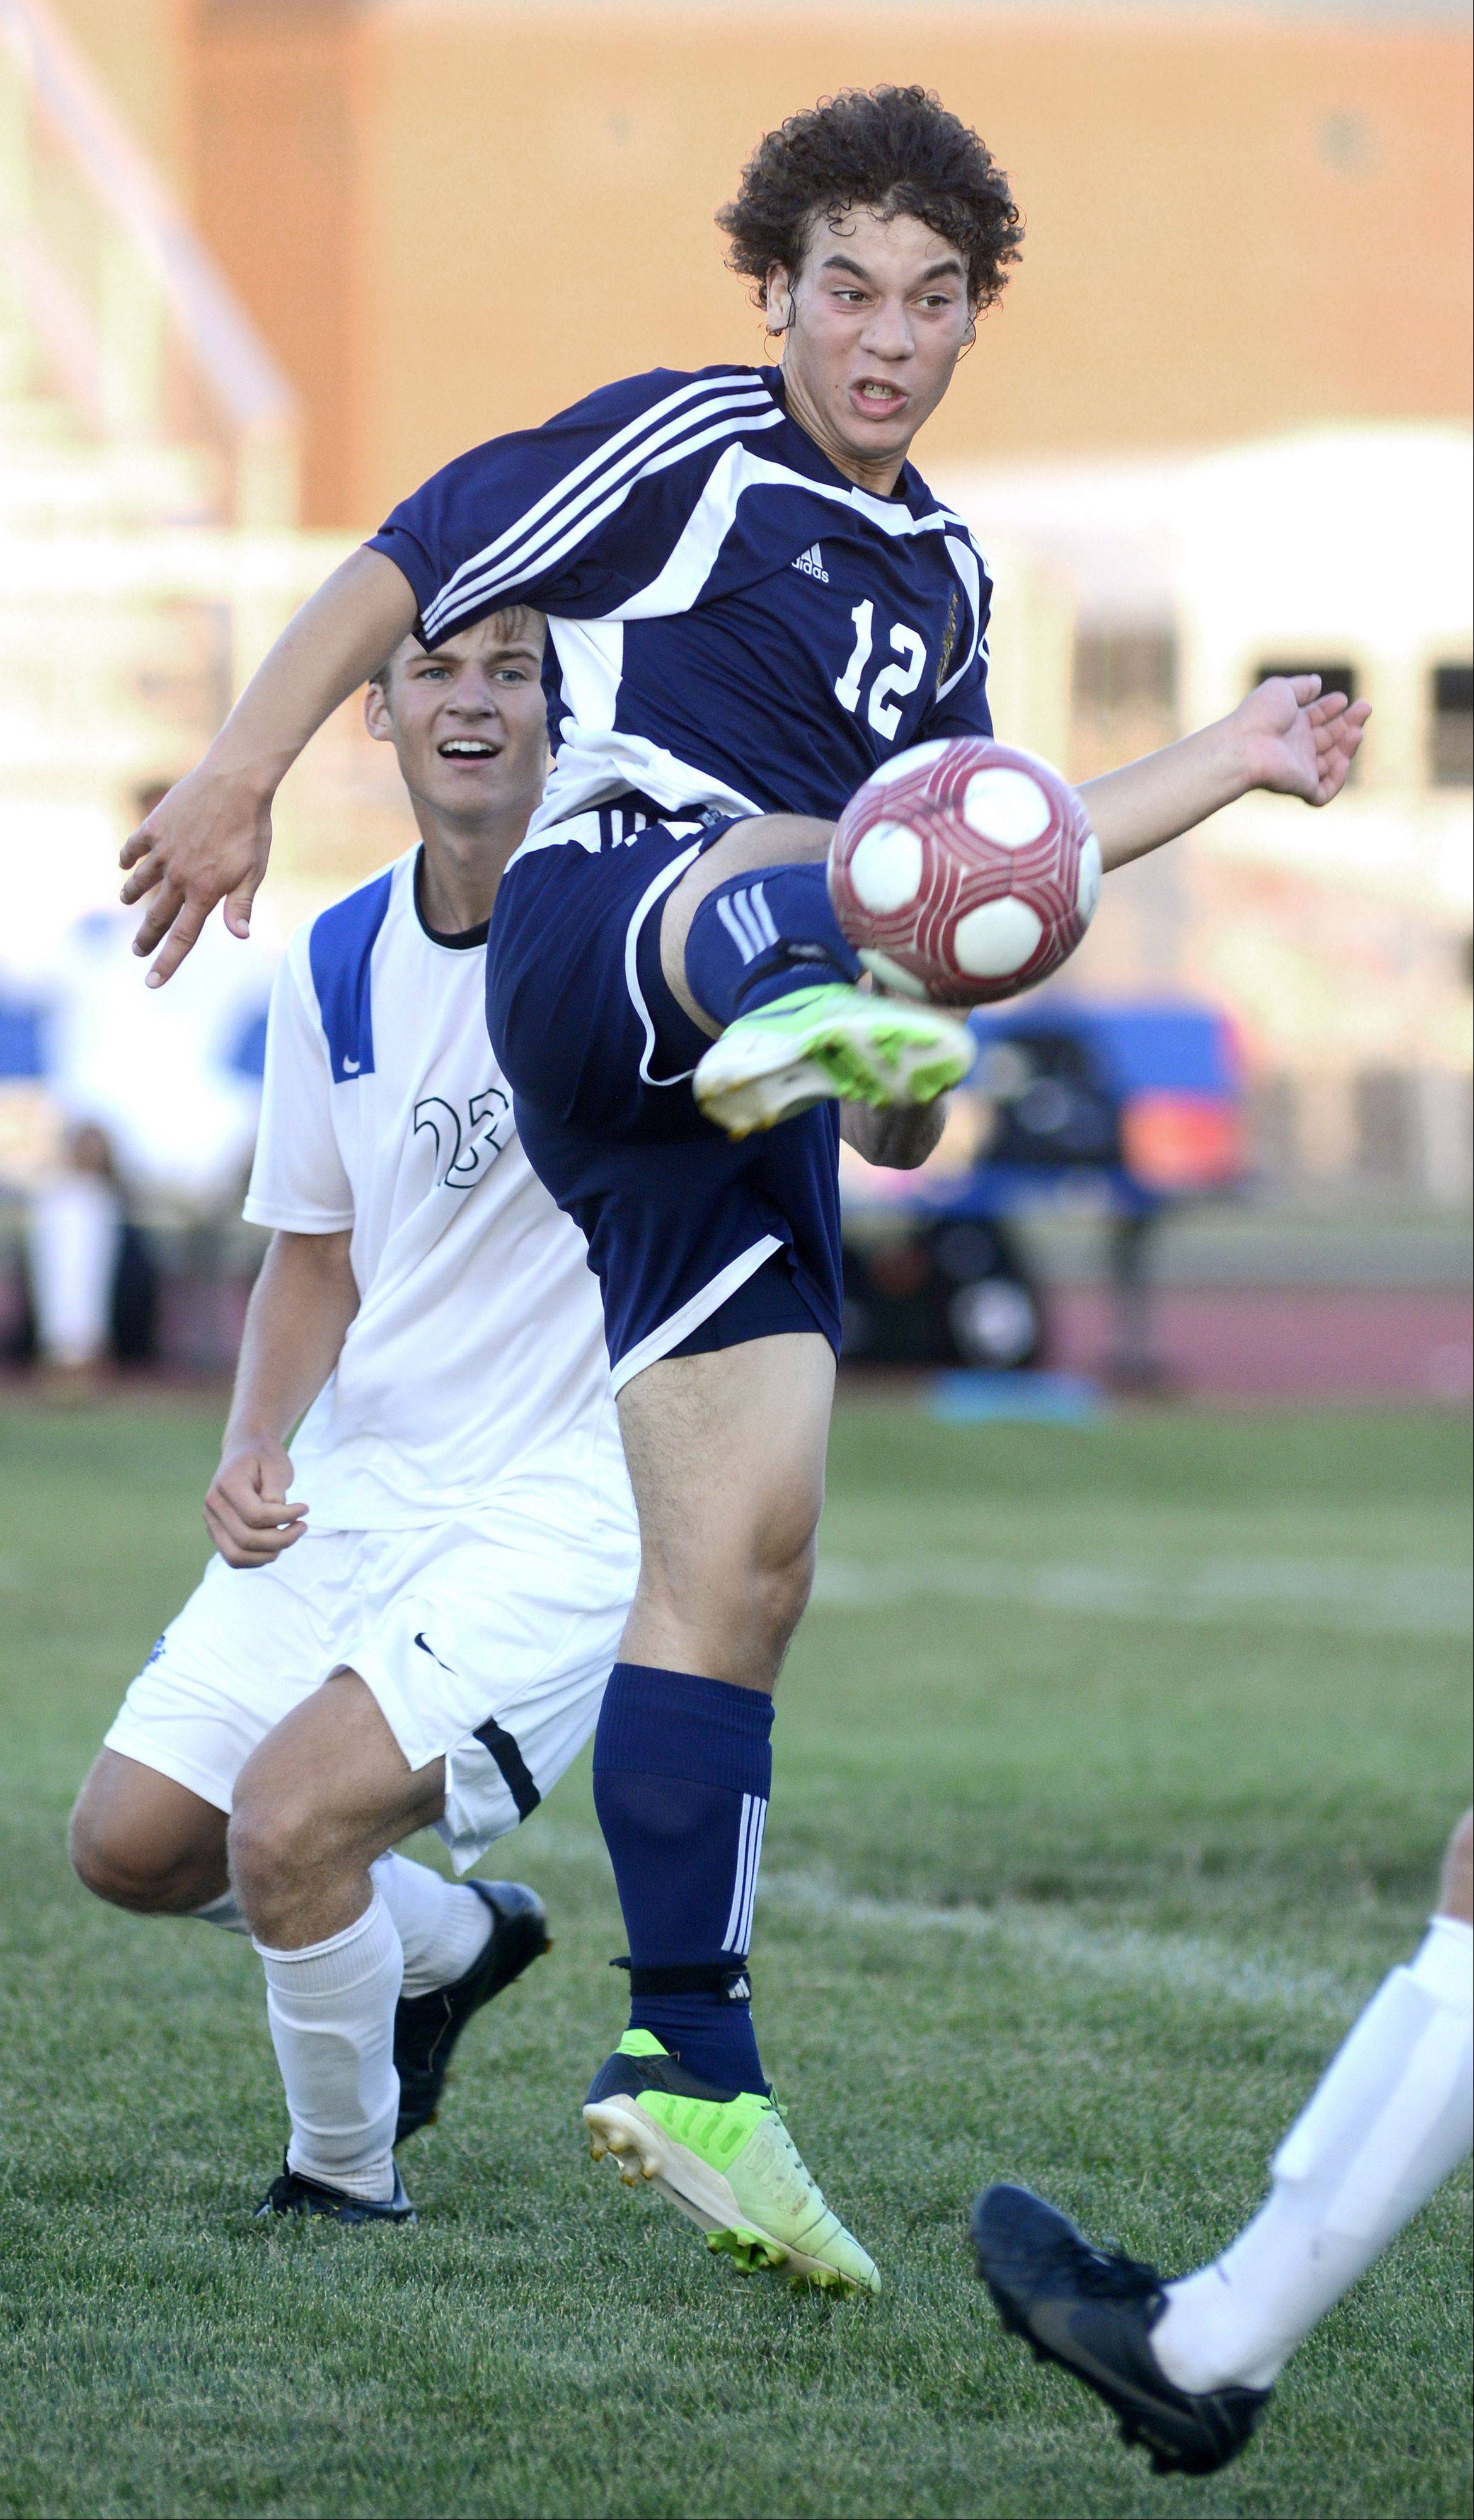 Neuqua Valley's Kersey Dickerson redirects the ball with a high kick with St. Charles North's Adam Hoffman on his back in the first half on Tuesday, August 27.